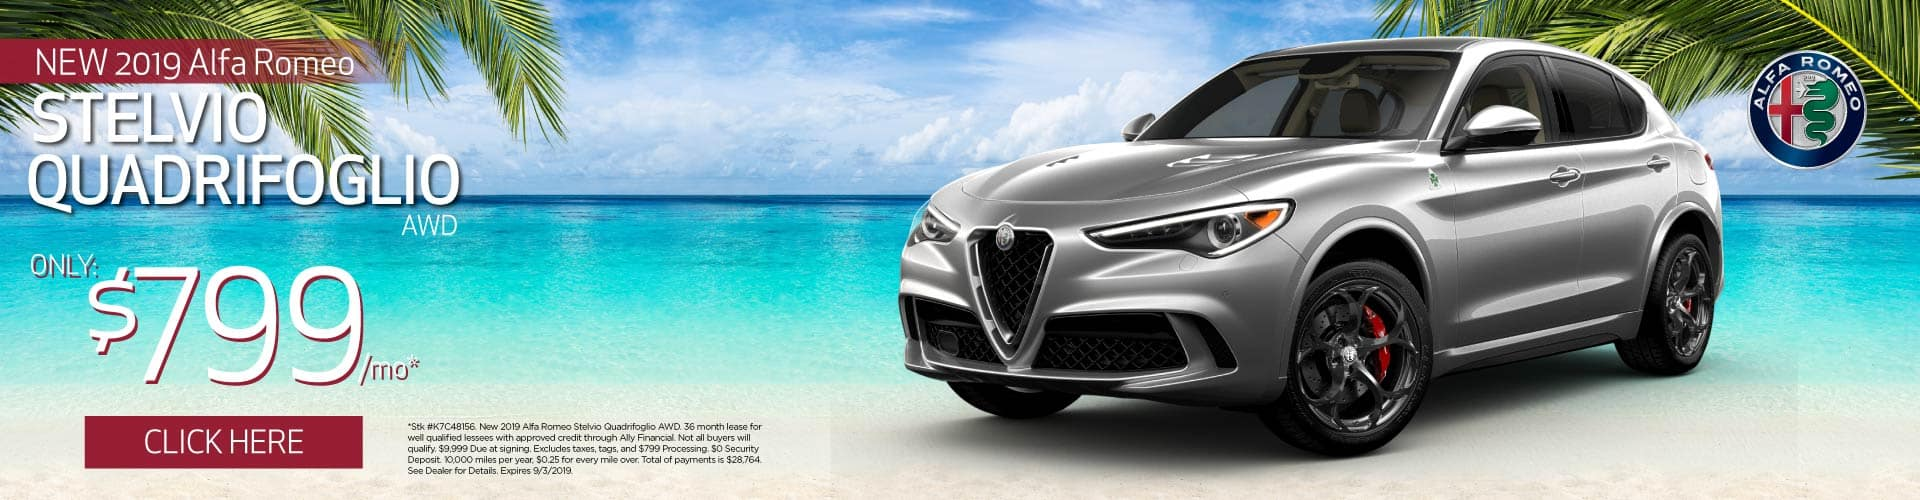 Stelvio Quadrifoglio AWD Lease Specials